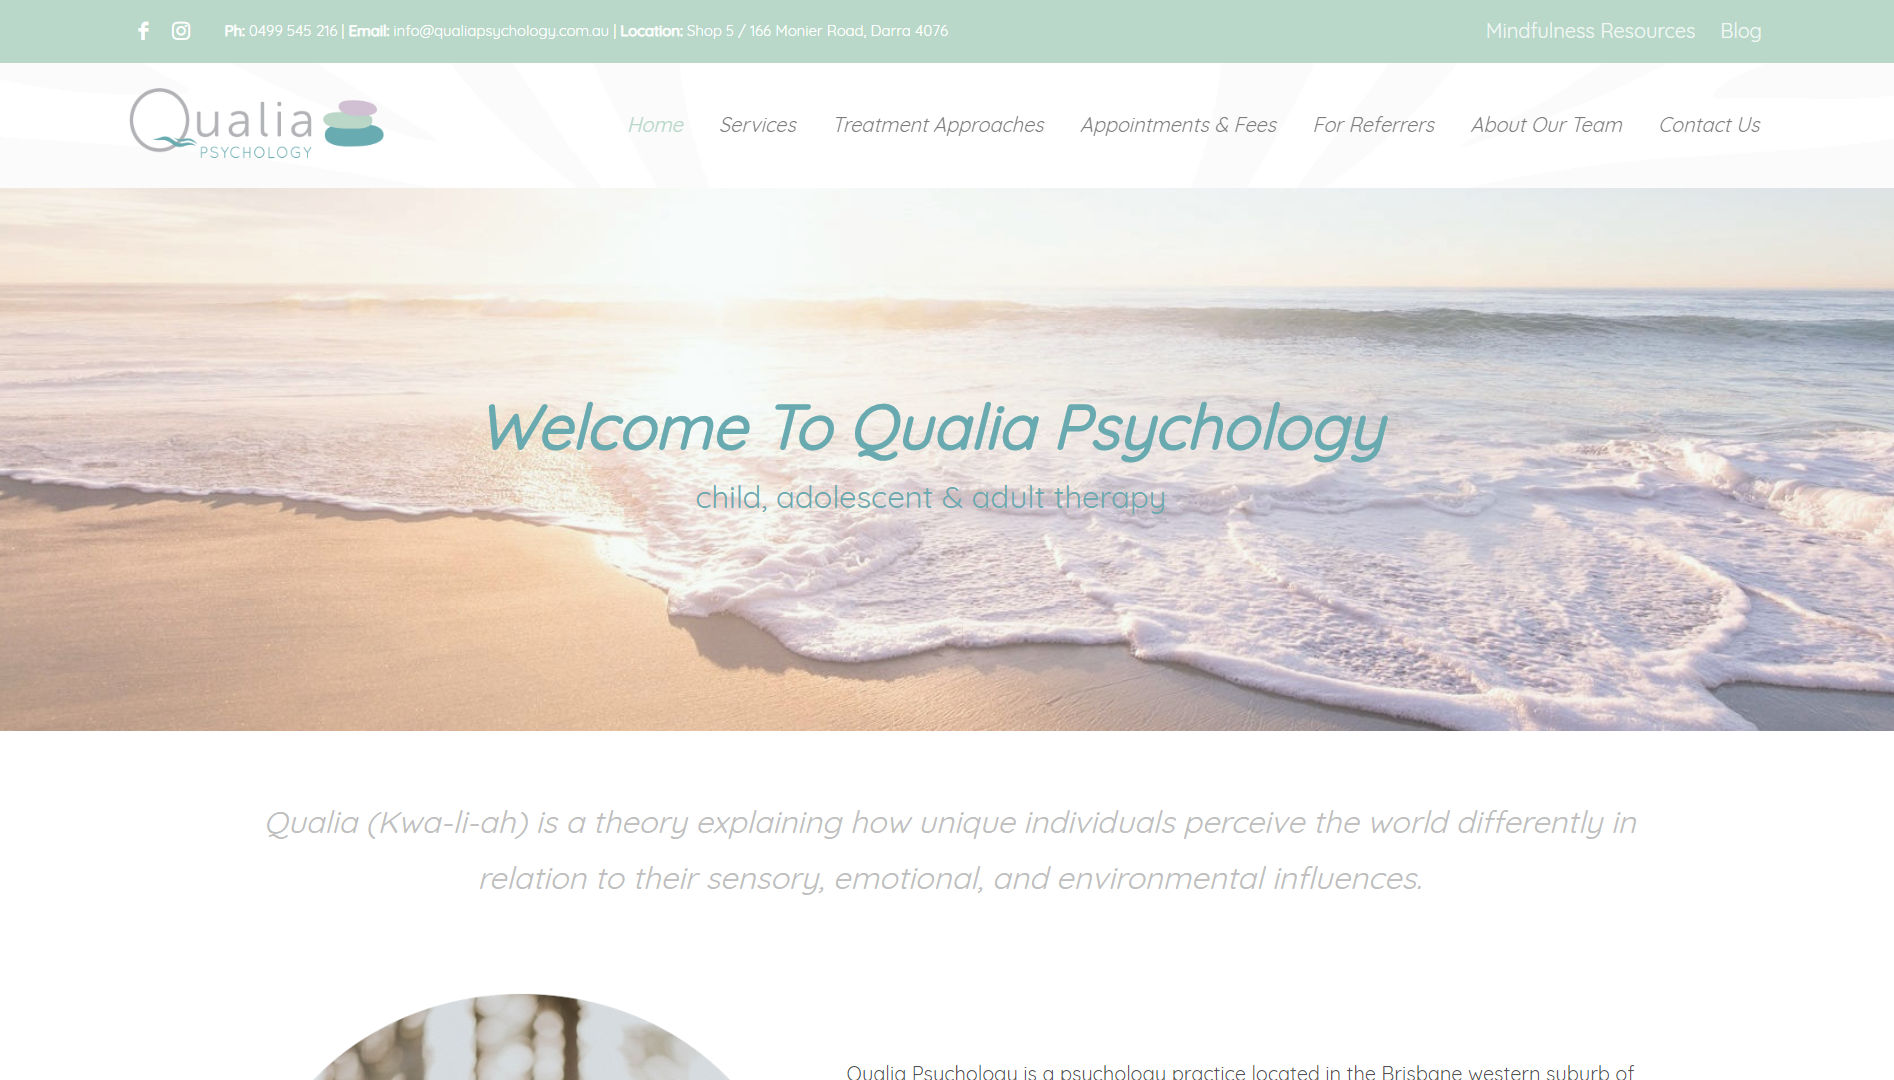 qualia psychology website - primomedia